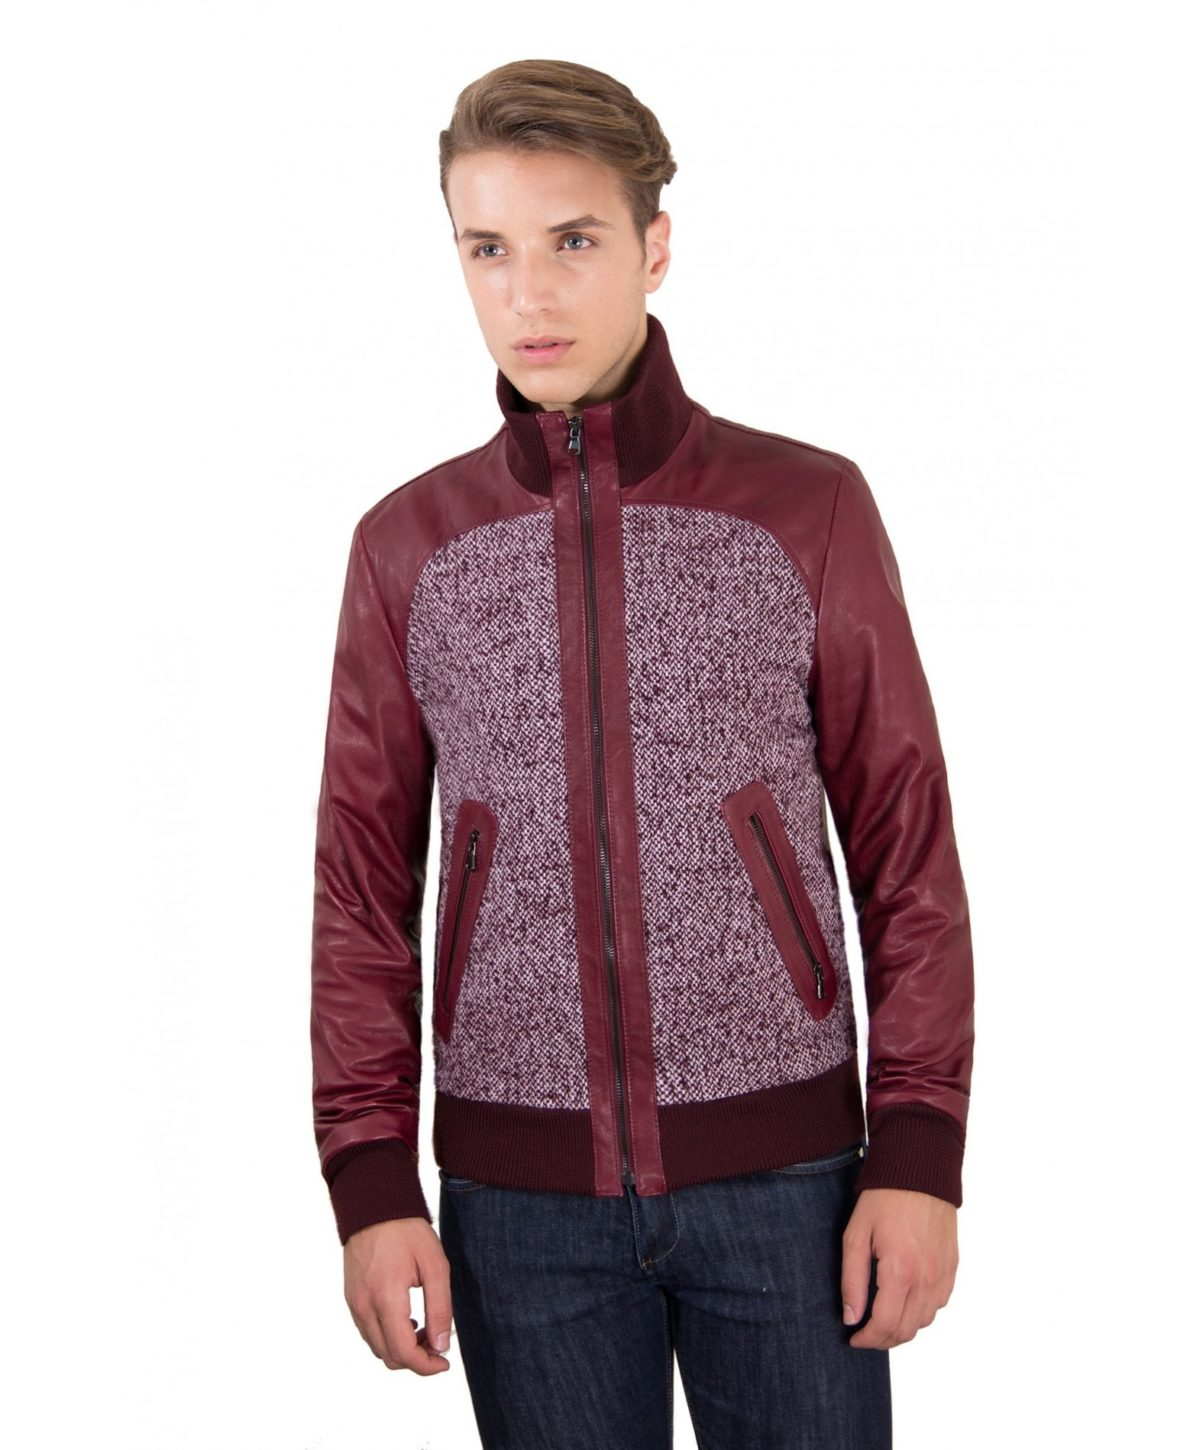 men-s-leather-jacket-style-bomber-wool-parts-and-zip-pockets-color-red-purple-u402